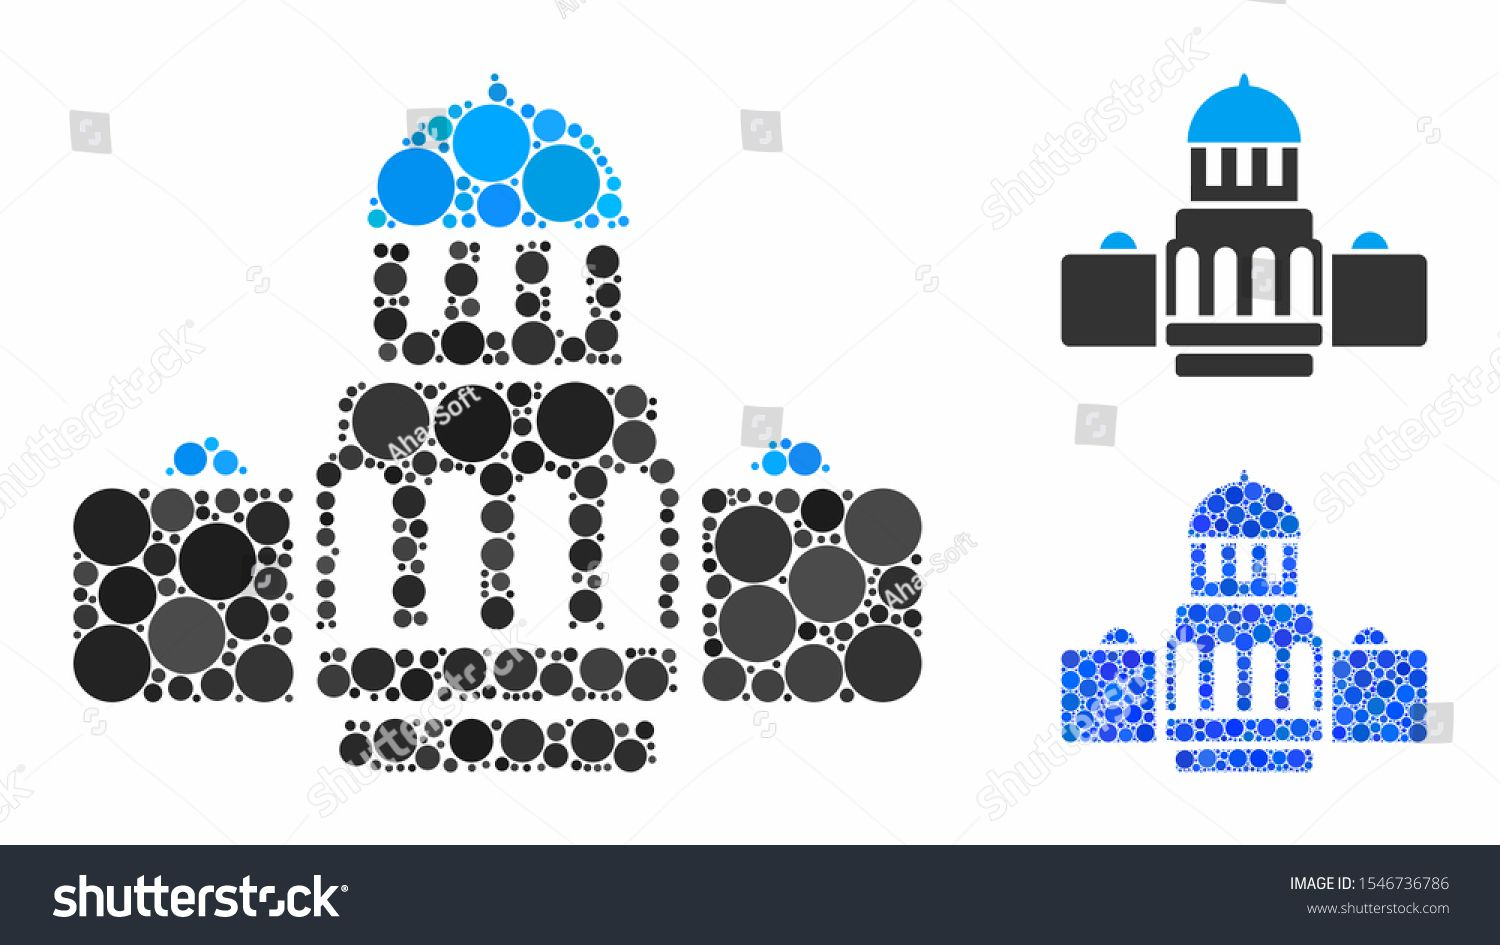 Government buildings composition of round dots in variable